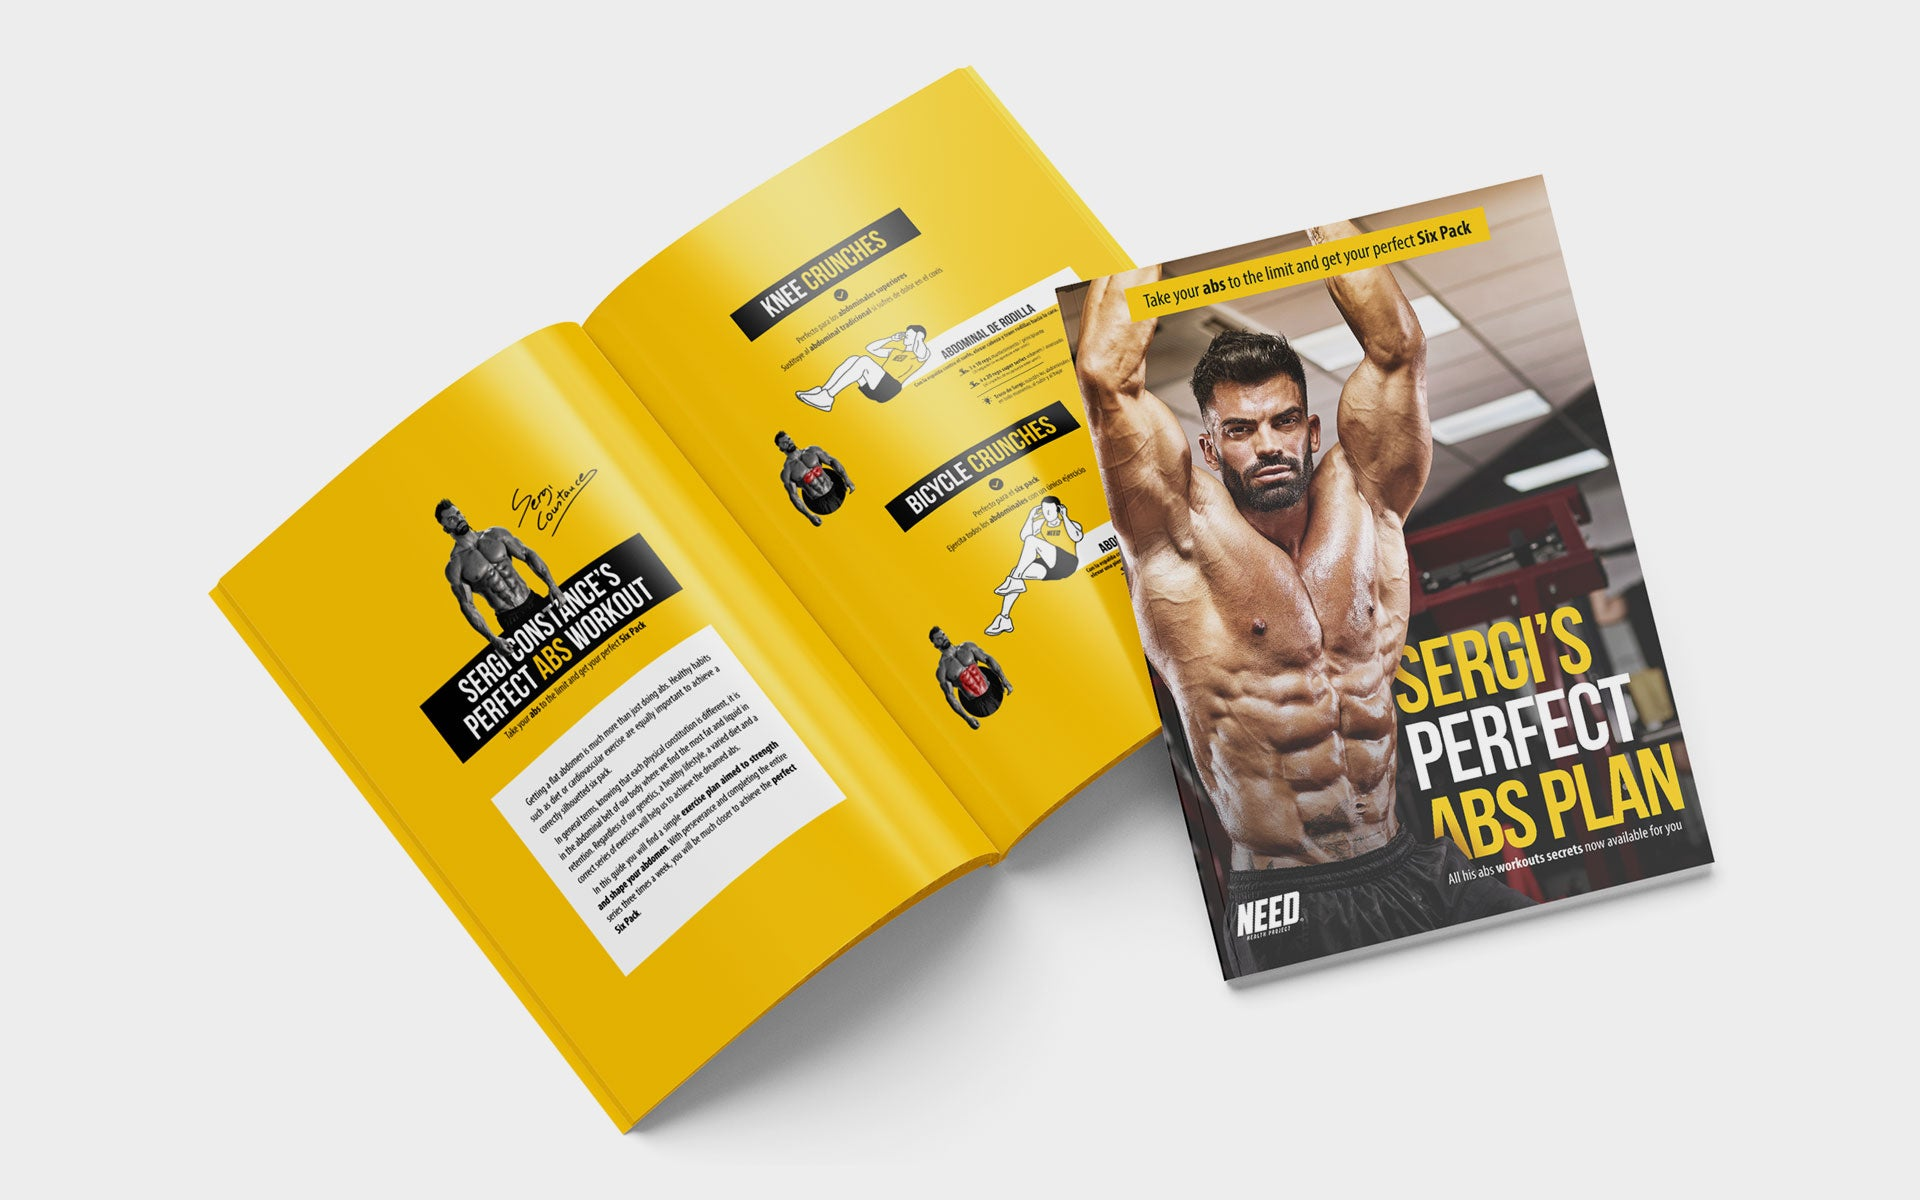 Sergi's Perfect Abs Guide